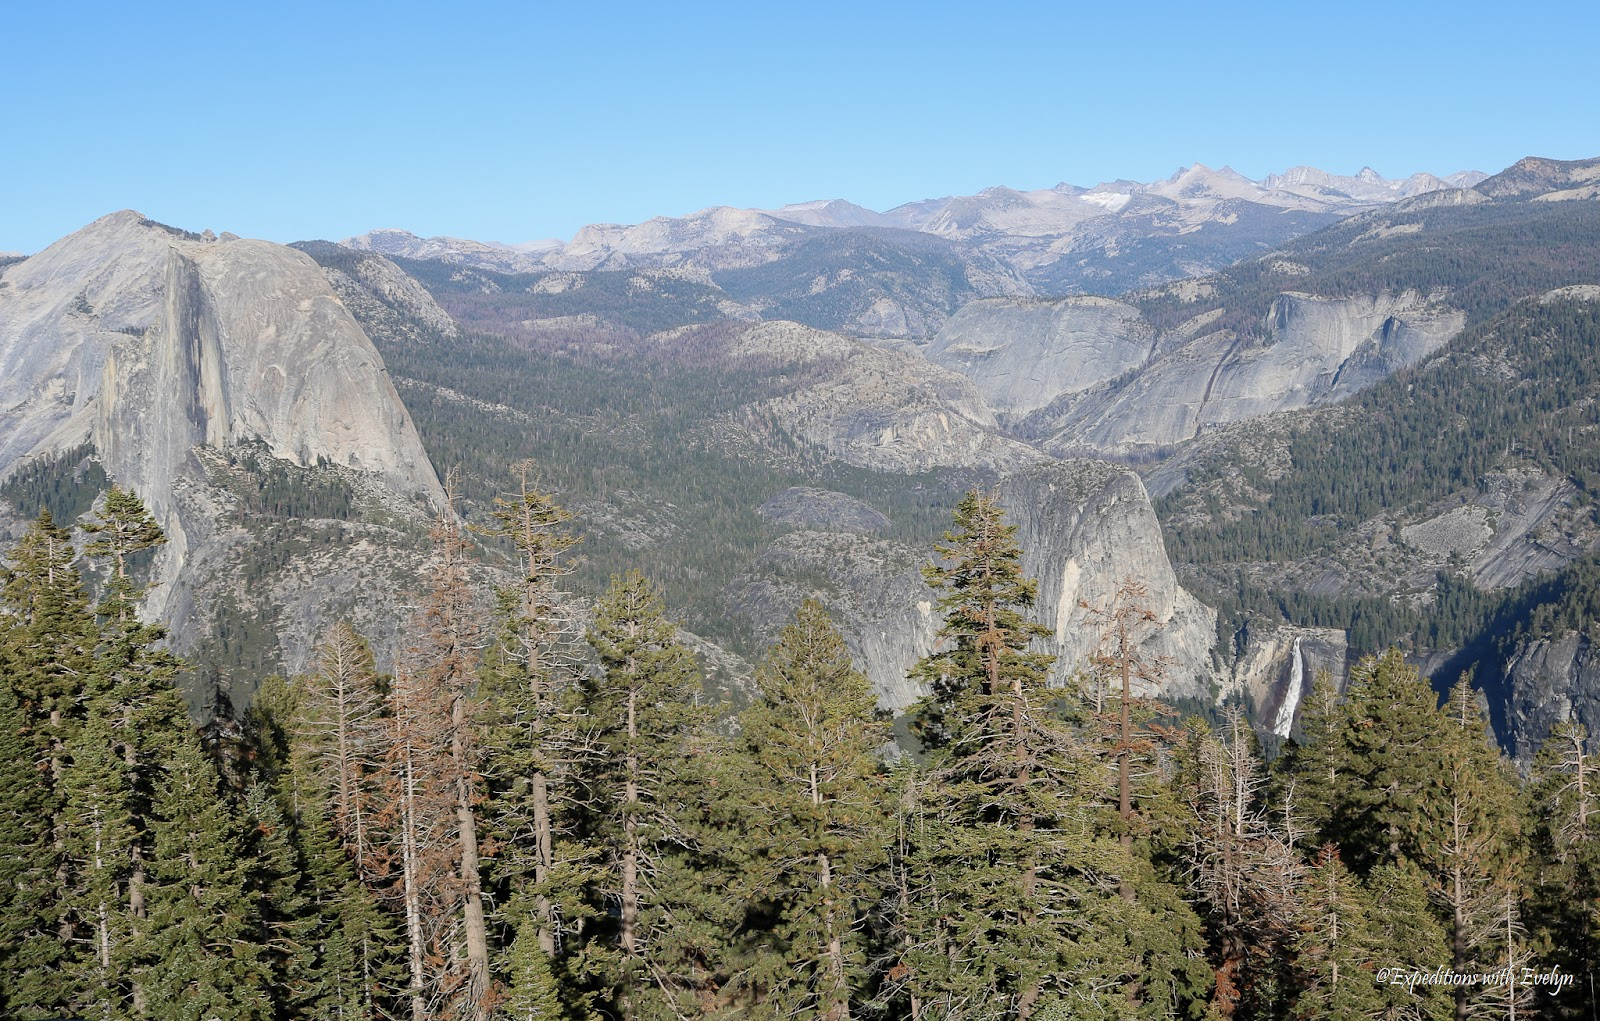 Half Dome, Nevada Fall, and other Yosemite icons command the view behind the pine trees from the top of Sentinel Dome.